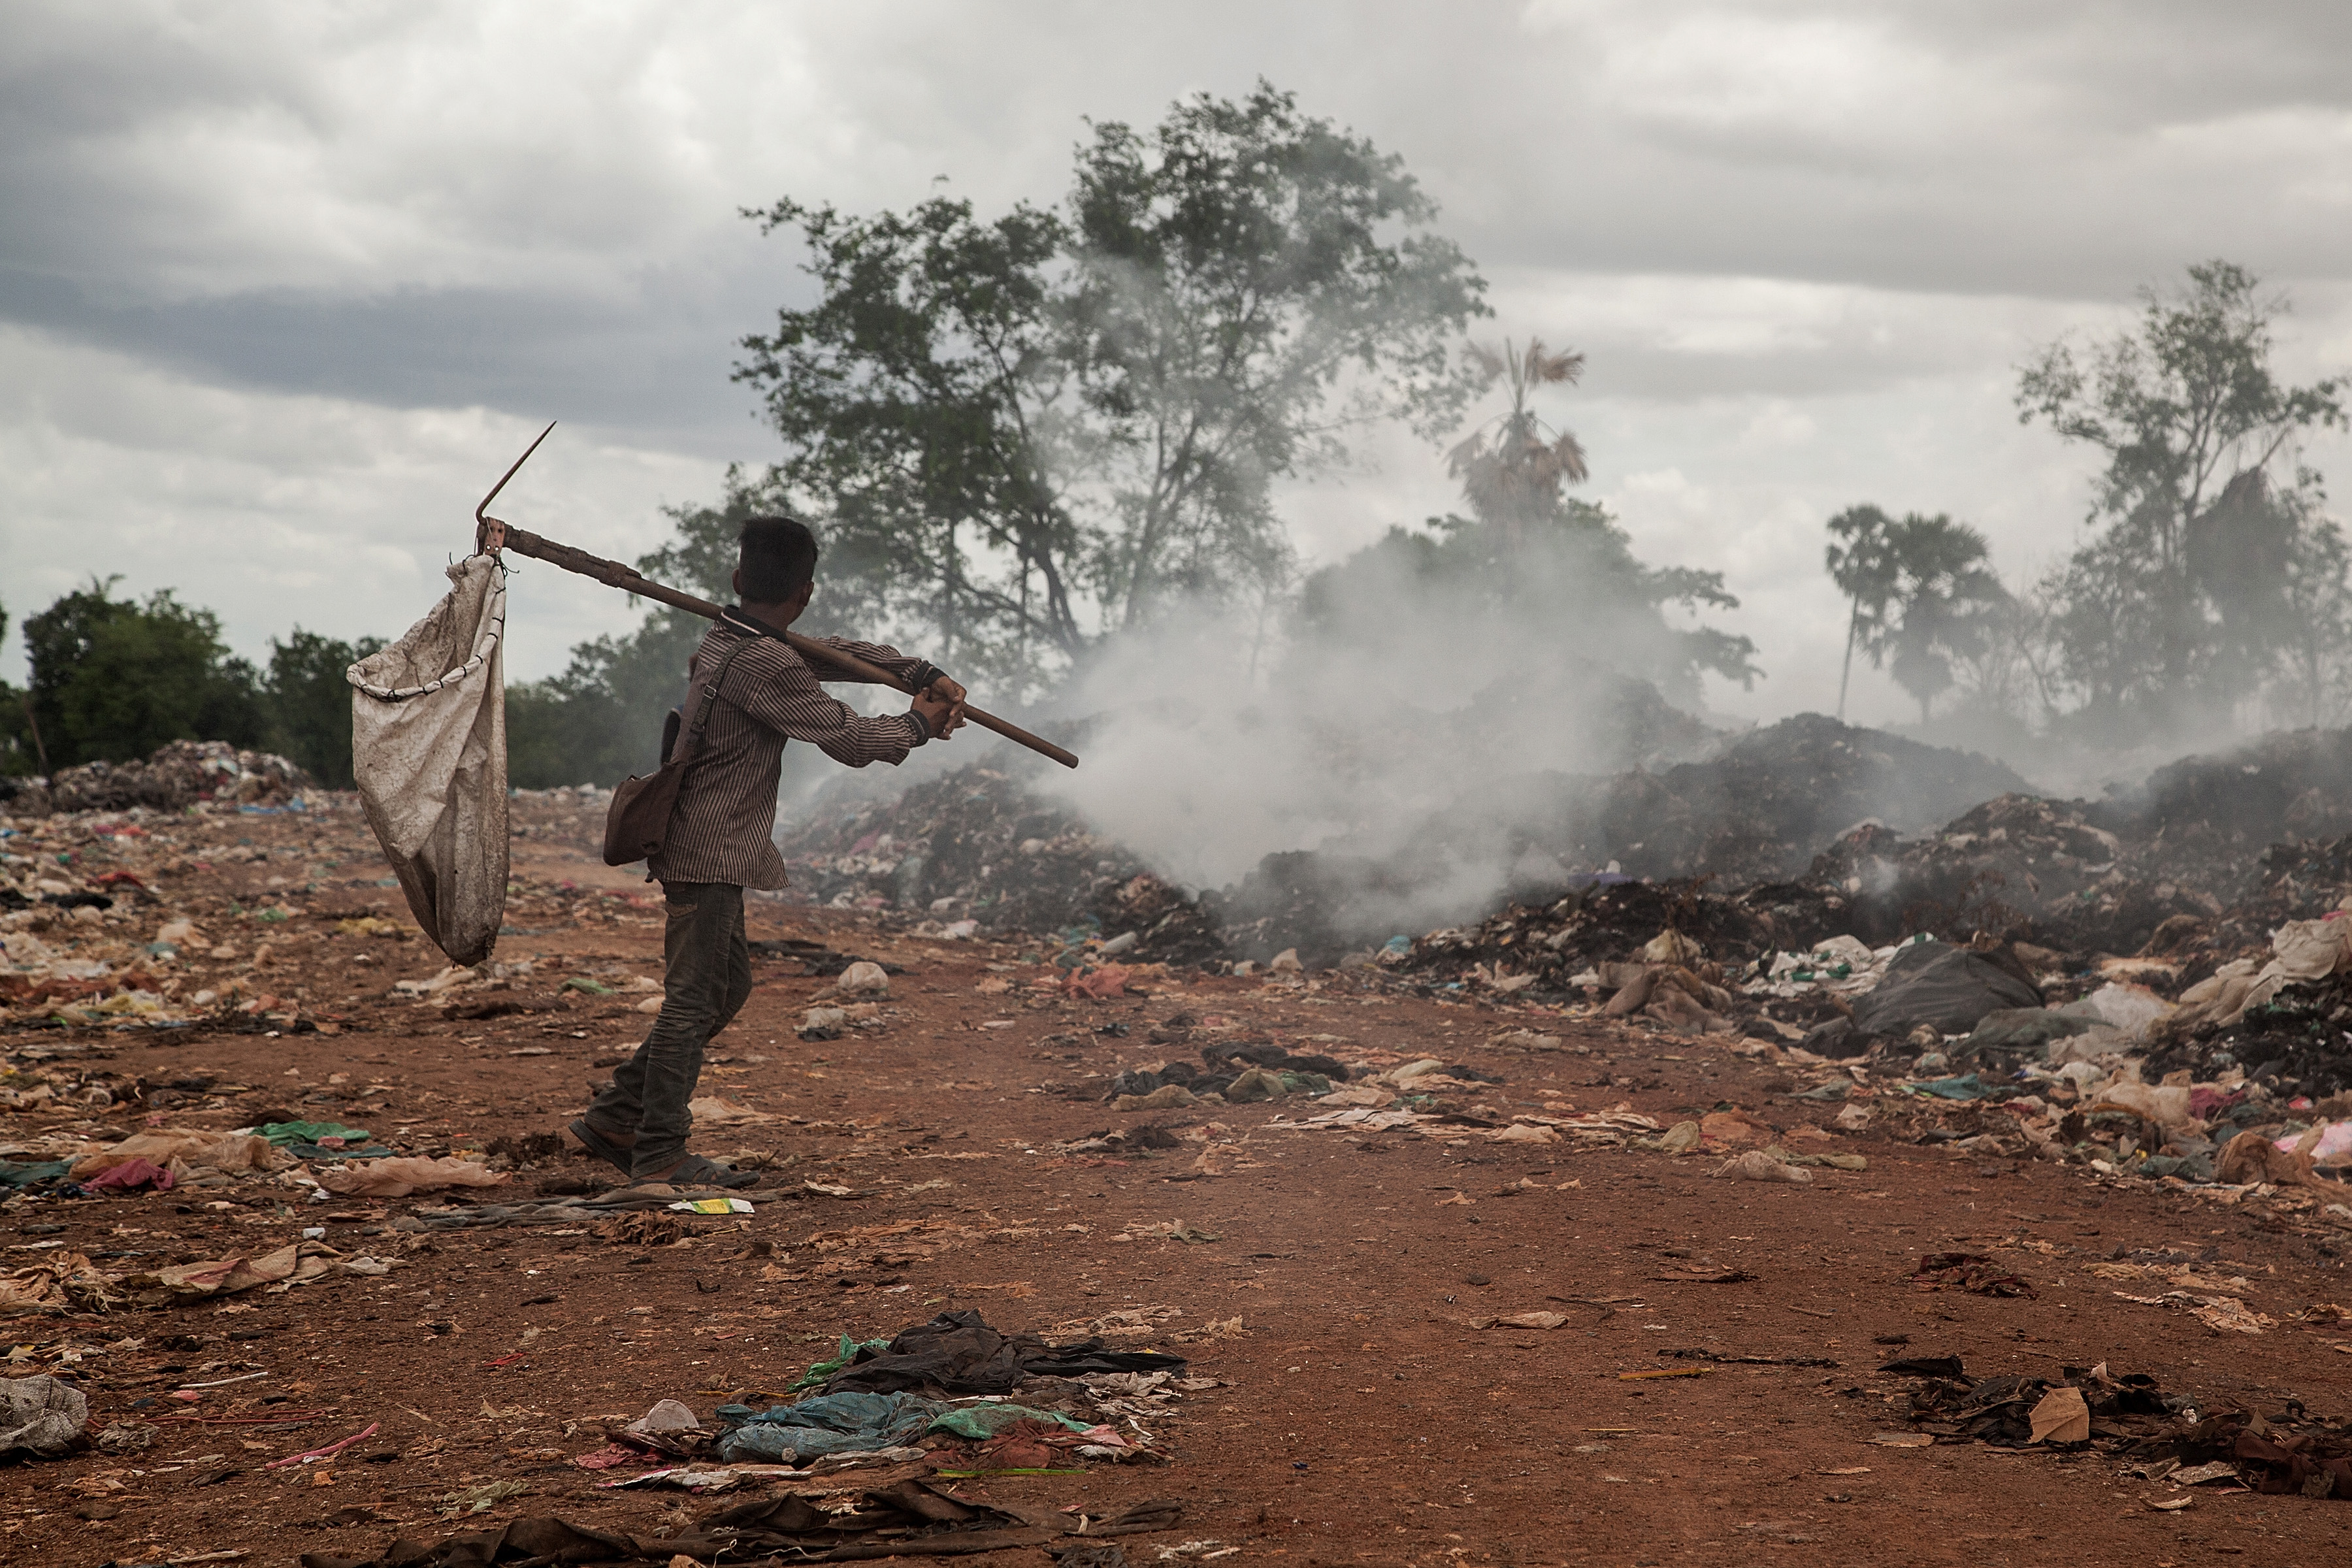 A young scavenger walks near a burning pile of trash in the Anlong Pi landfill on June 11, 2014 in Siem Reap, Cambodia.